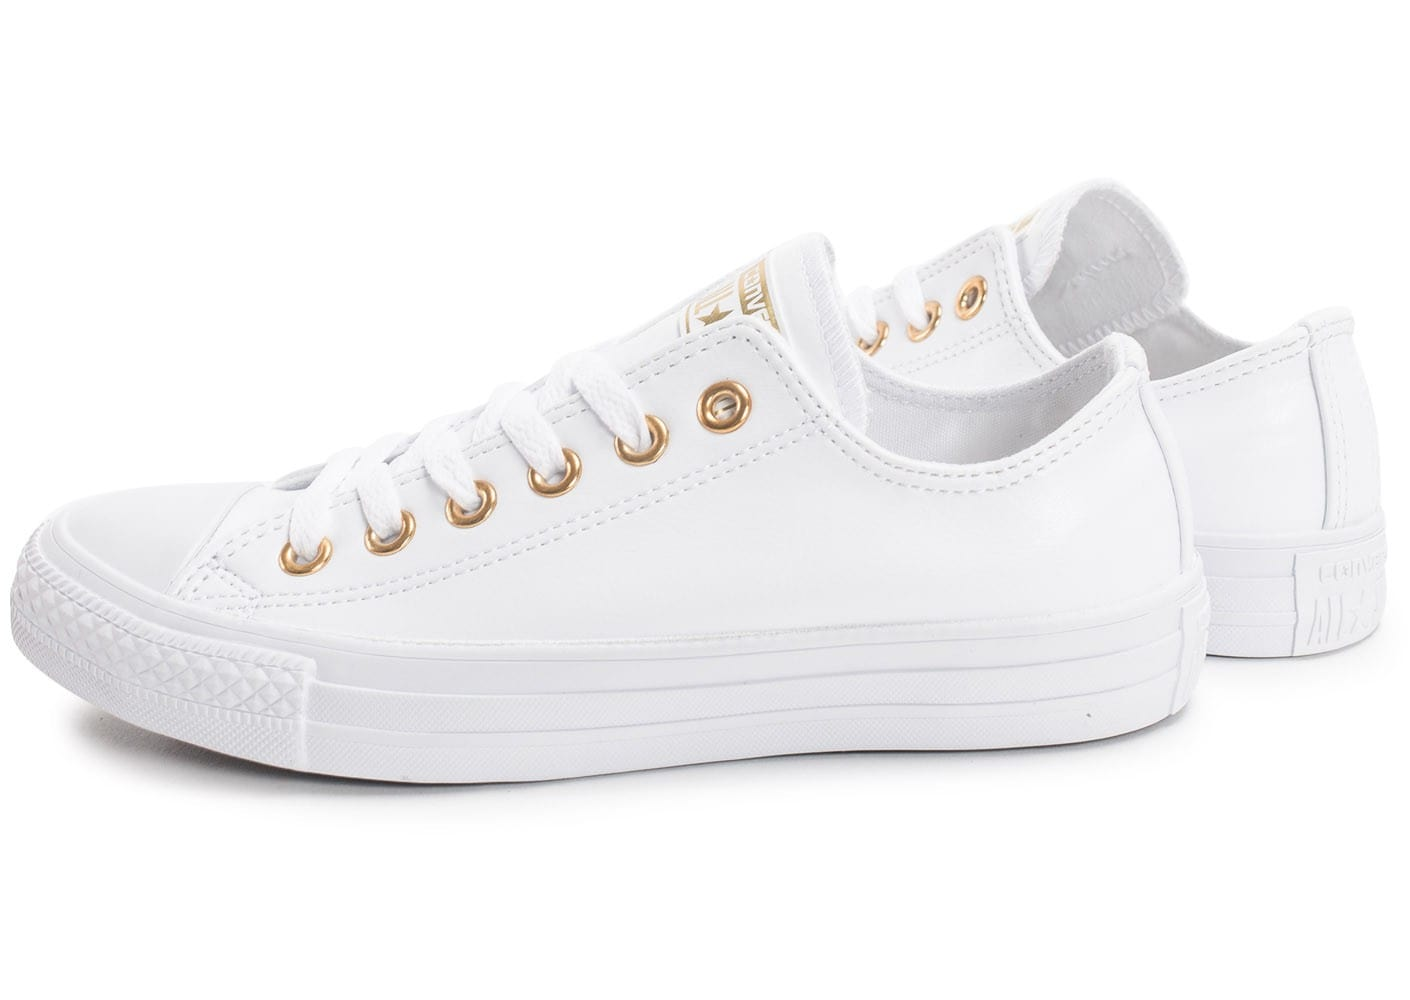 Converse Chuck Taylor All Star OX blanche et or - Chaussures ...